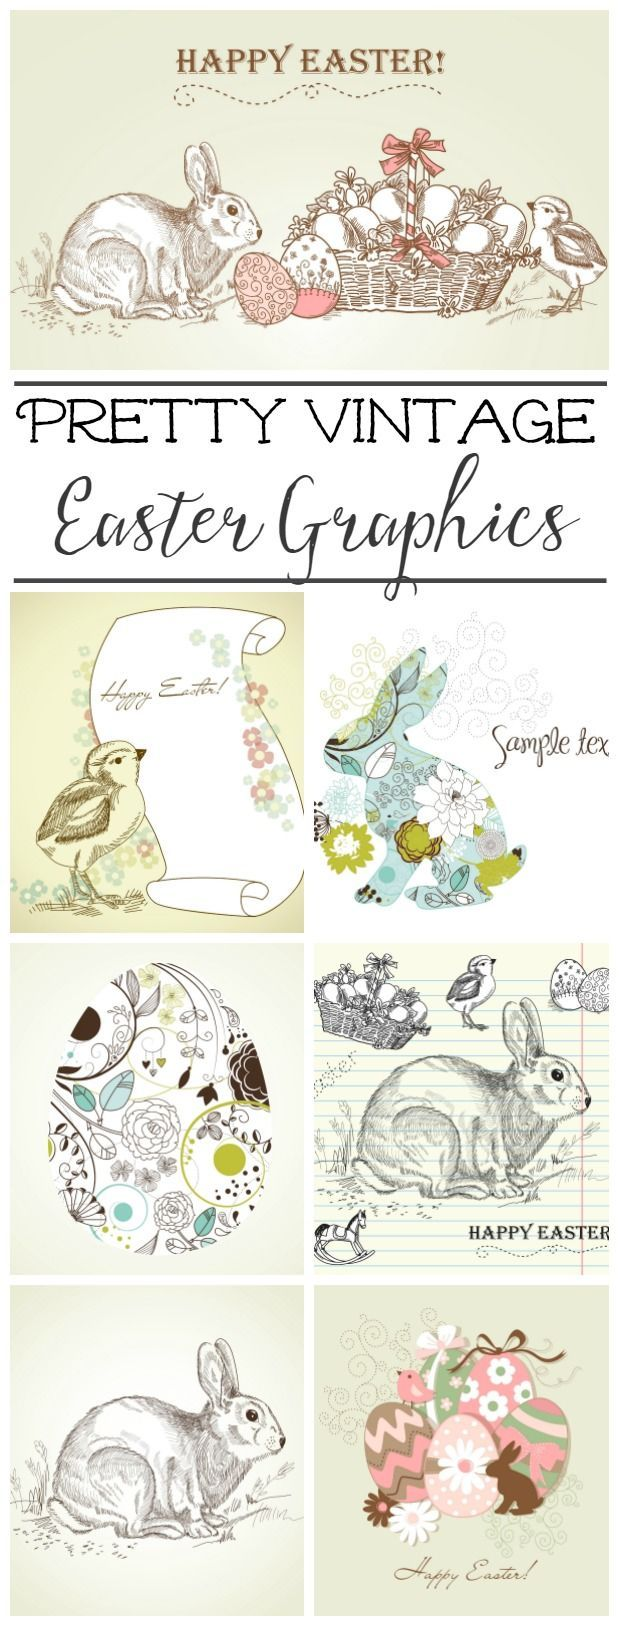 Pretty vintage easter graphics great for easter cards tags and pretty vintage easter graphics great for easter cards tags and printables negle Gallery